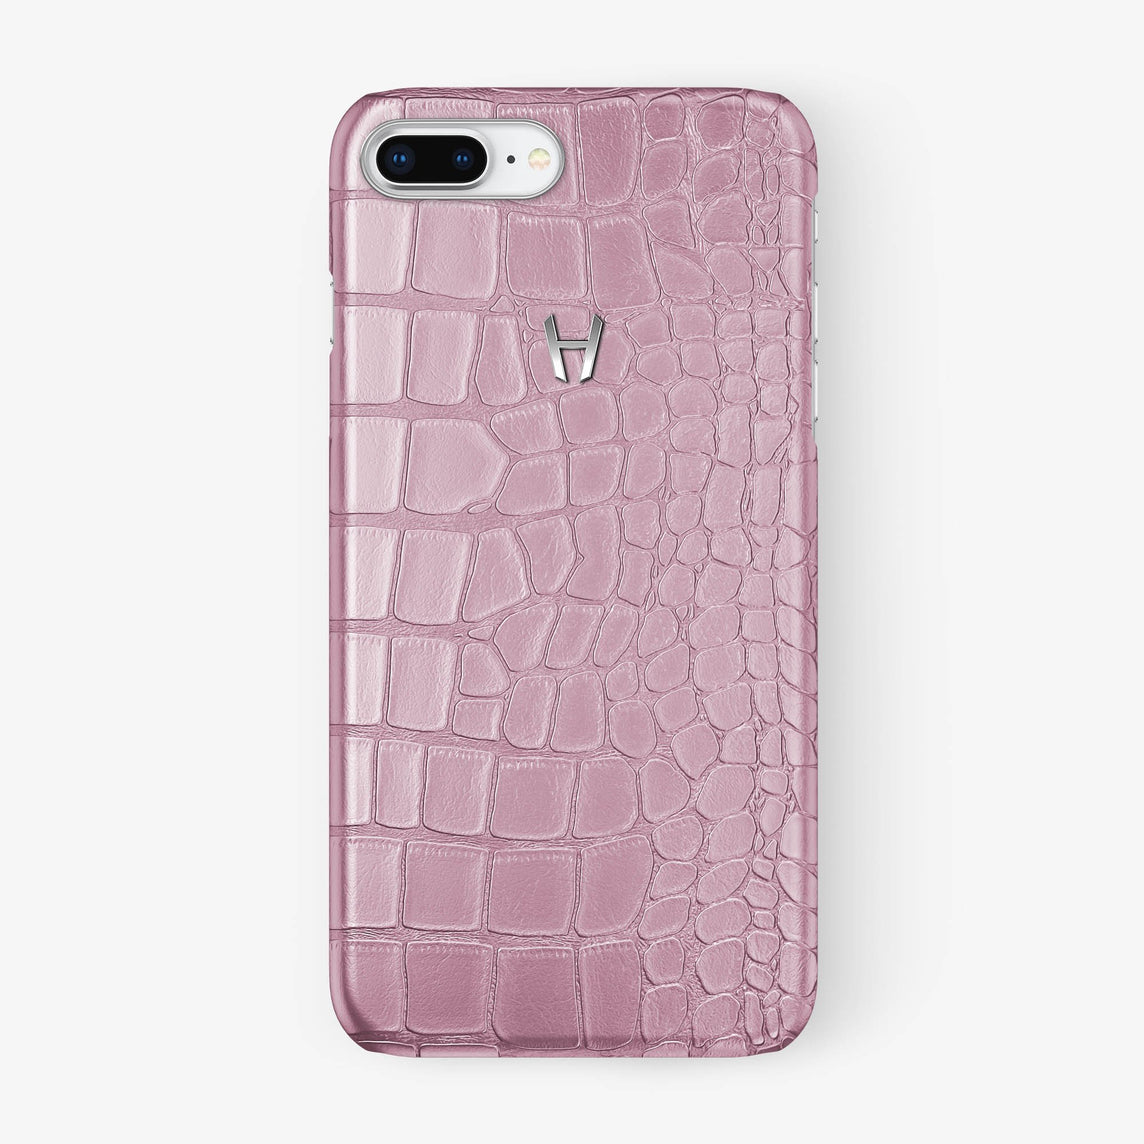 Alligator Case iPhone 7/8 Plus | Pink - Stainless Steel - Hadoro